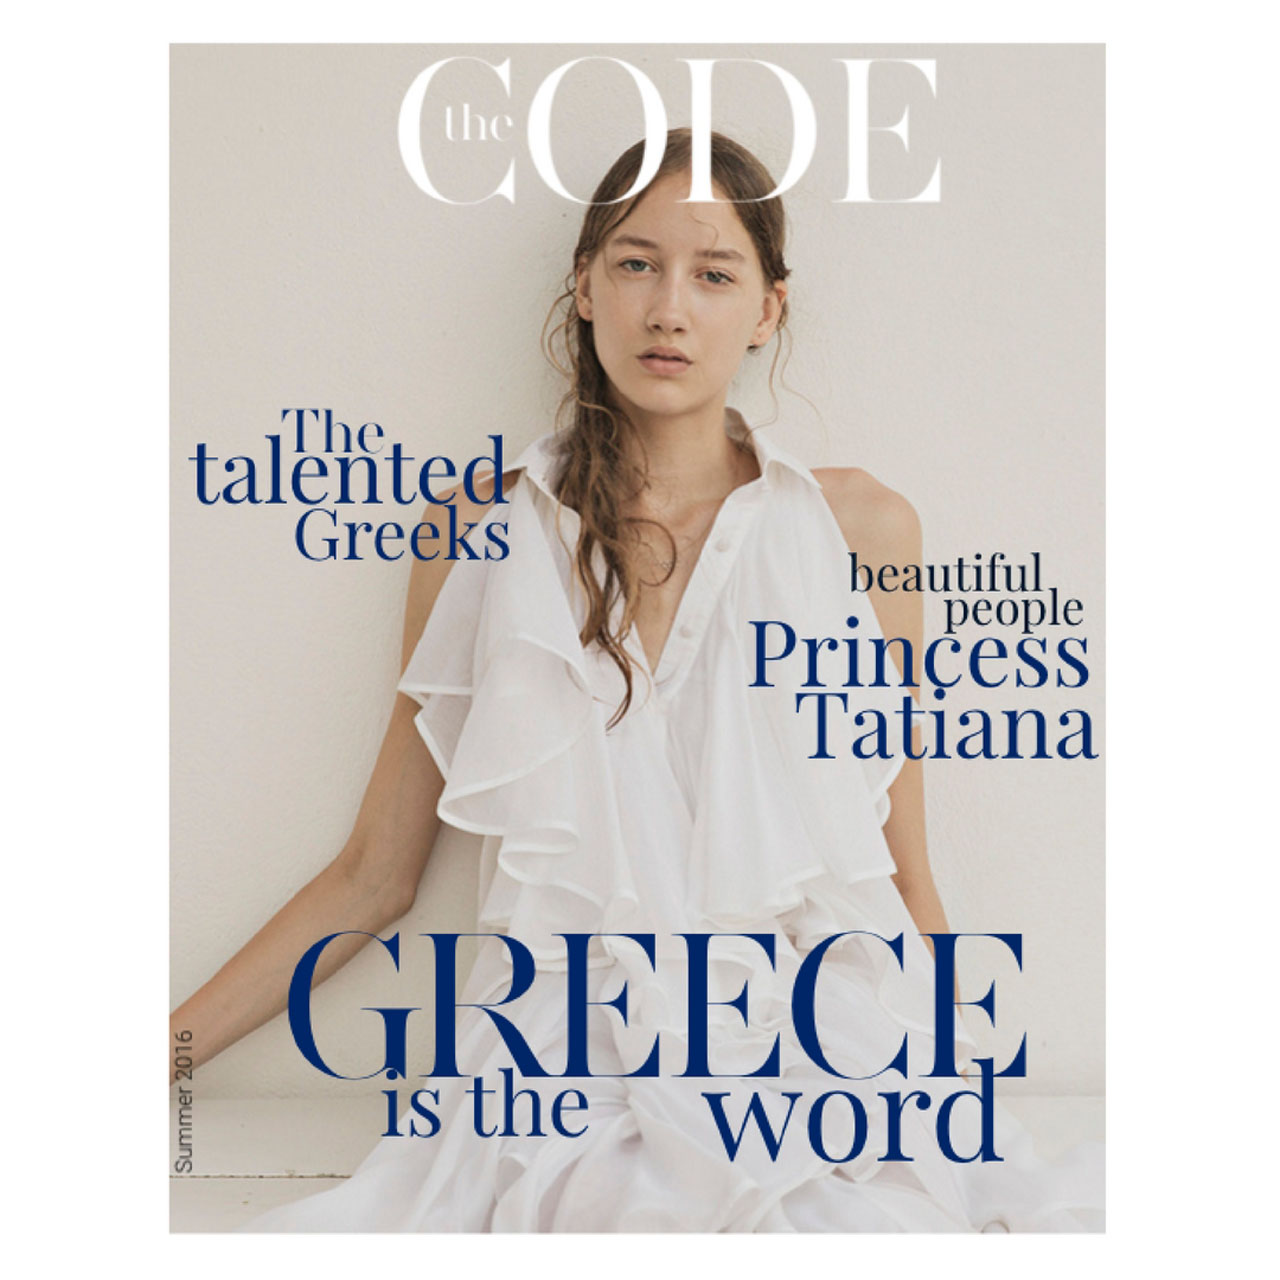 It's all Greek to Tamara for THE CODE Mag.